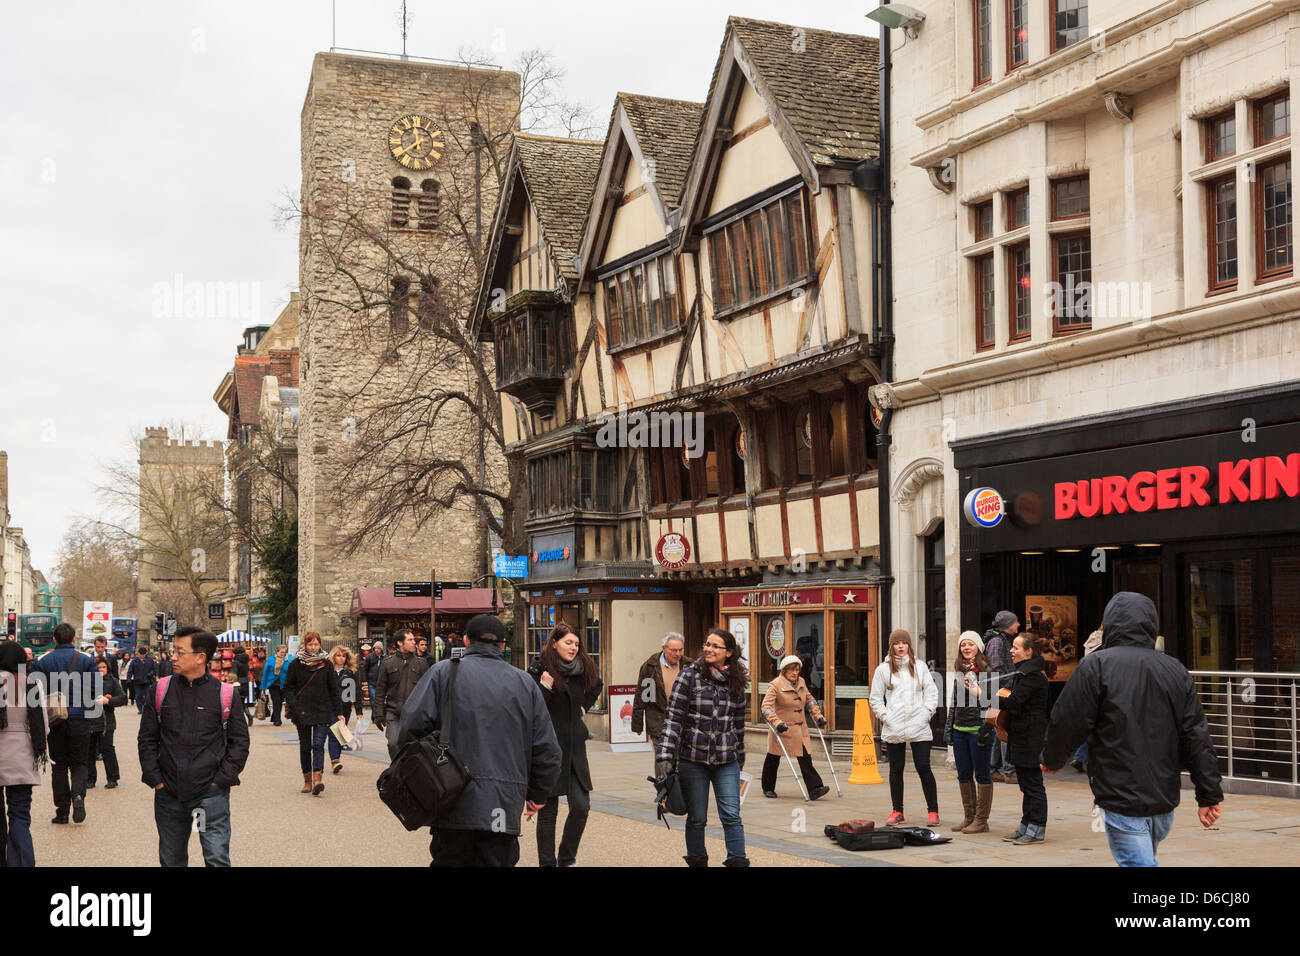 Shoppers in old historic city centre on pedestrianised Cornmarket Street in Oxford, Oxfordshire, England, UK, Britain - Stock Image